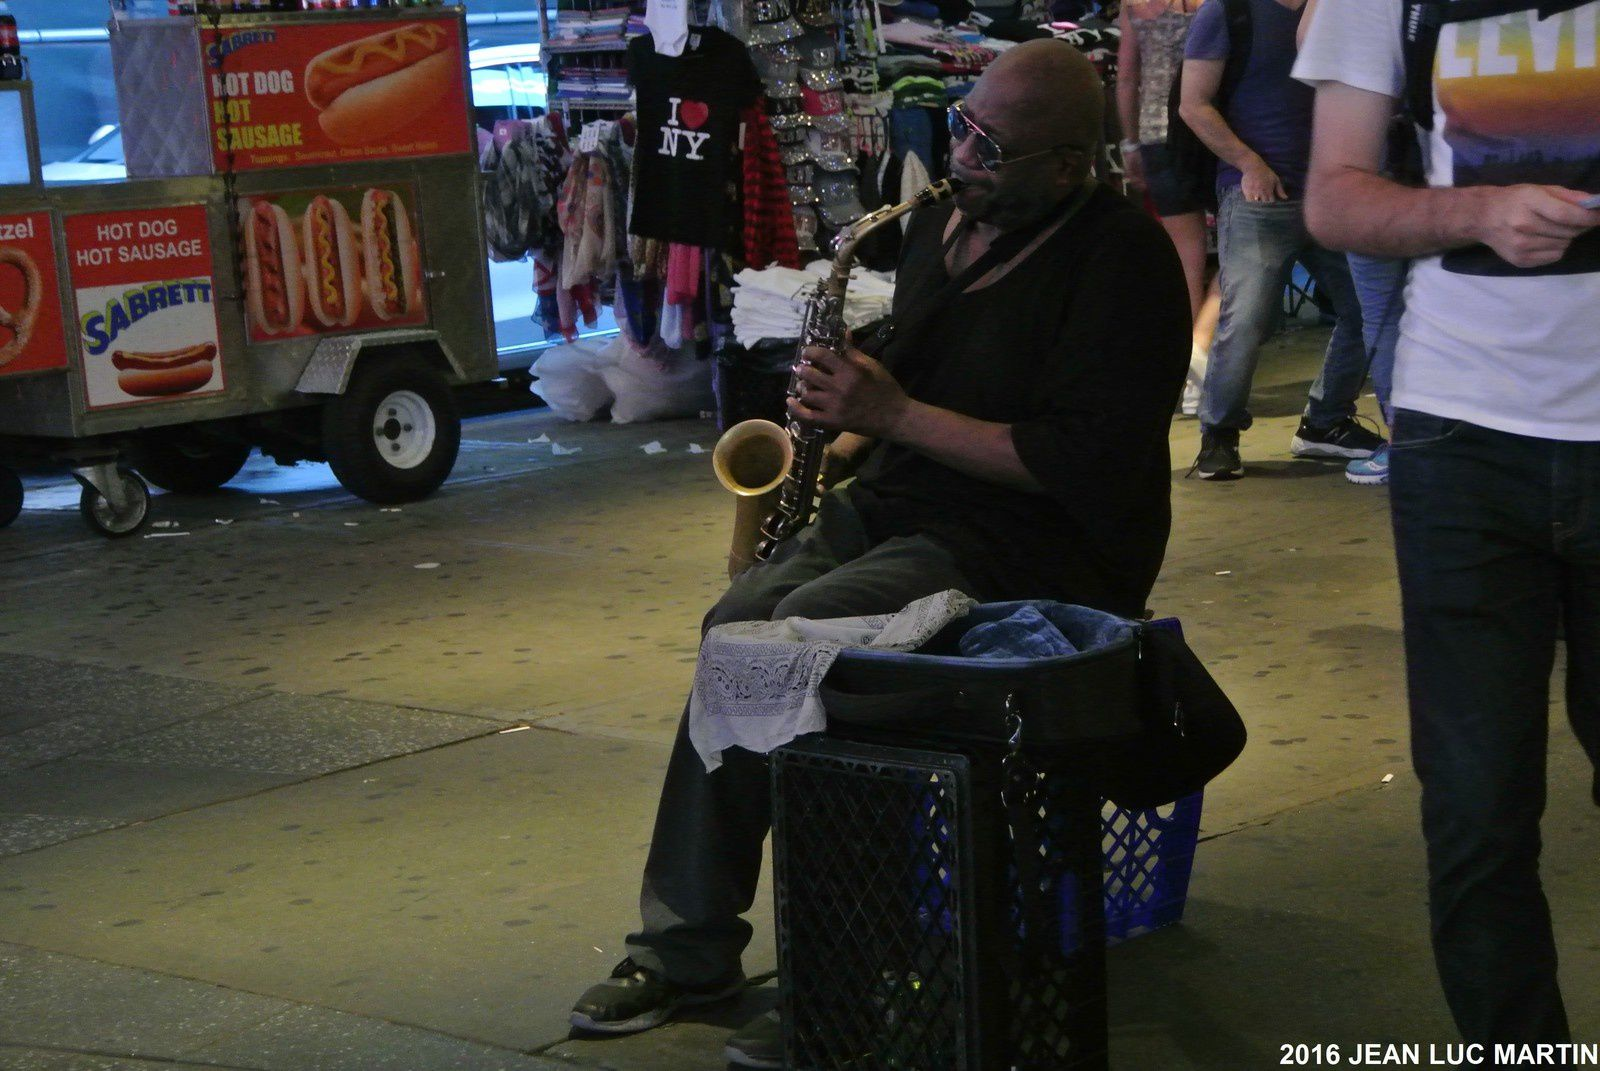 UN SAXOPHONISTE A TIME SQUARE A NEW-YORK